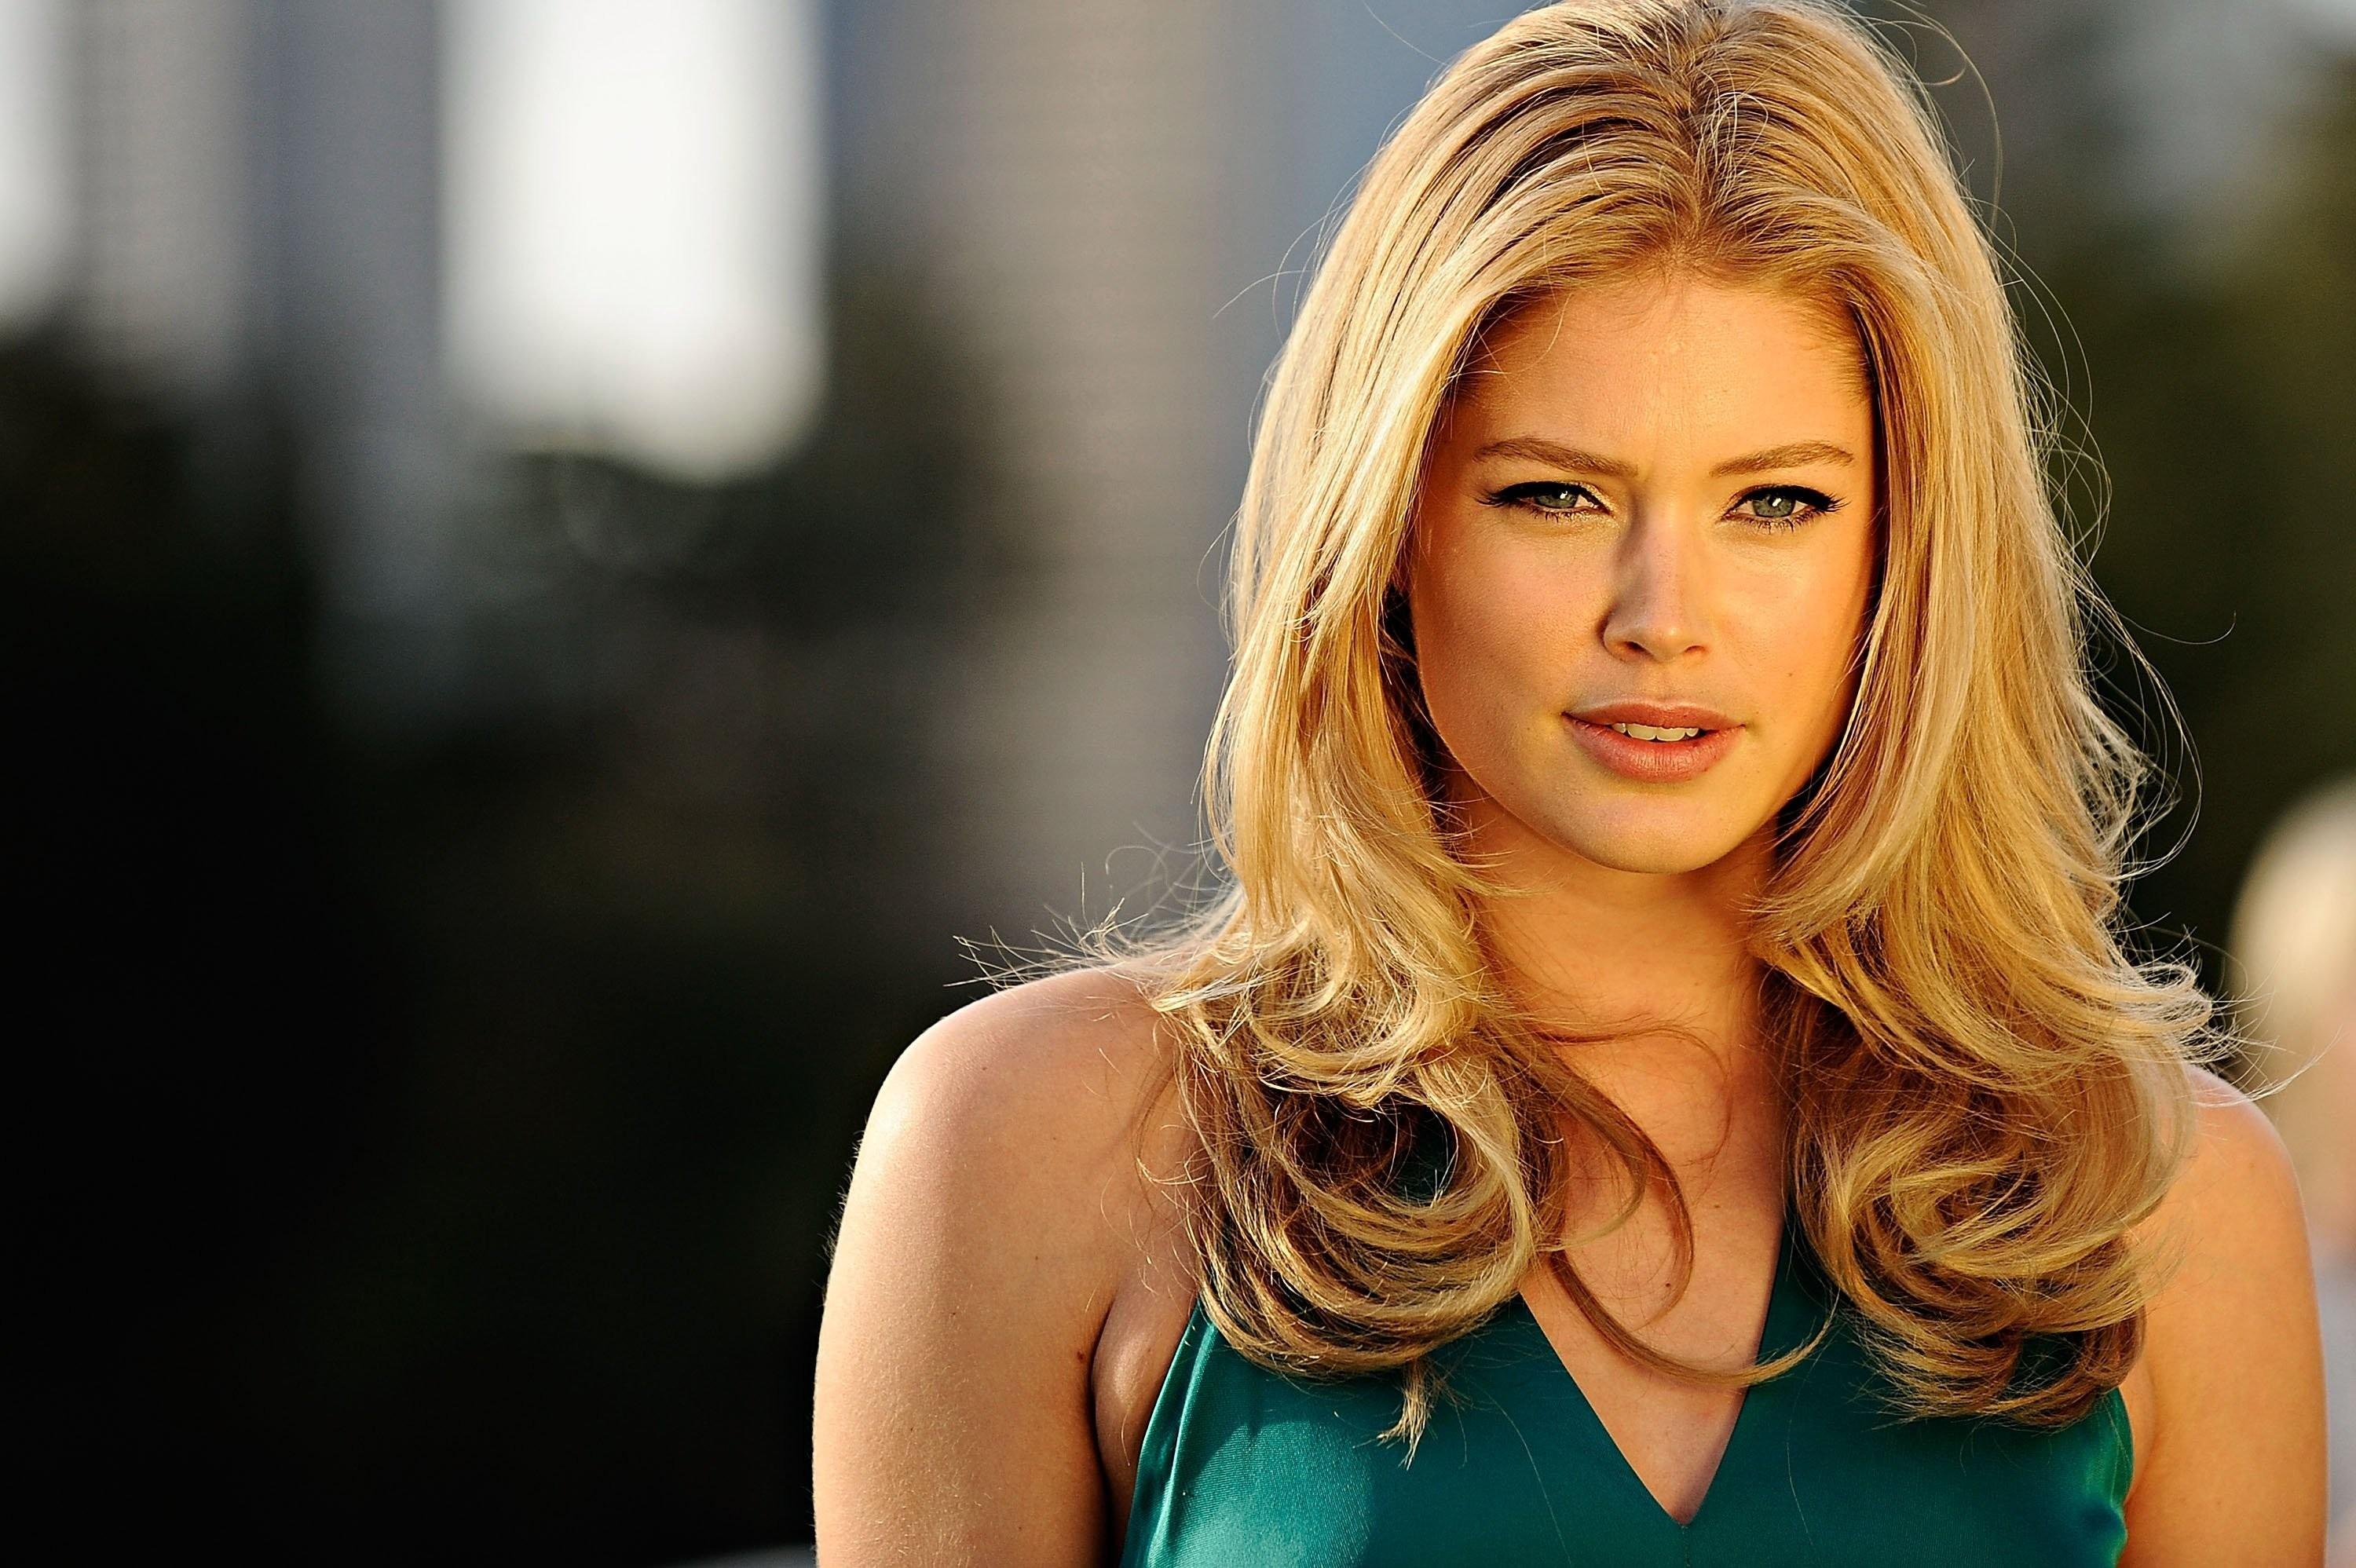 amazing doutzen kroes cute look desktop free mobile hd pictures background